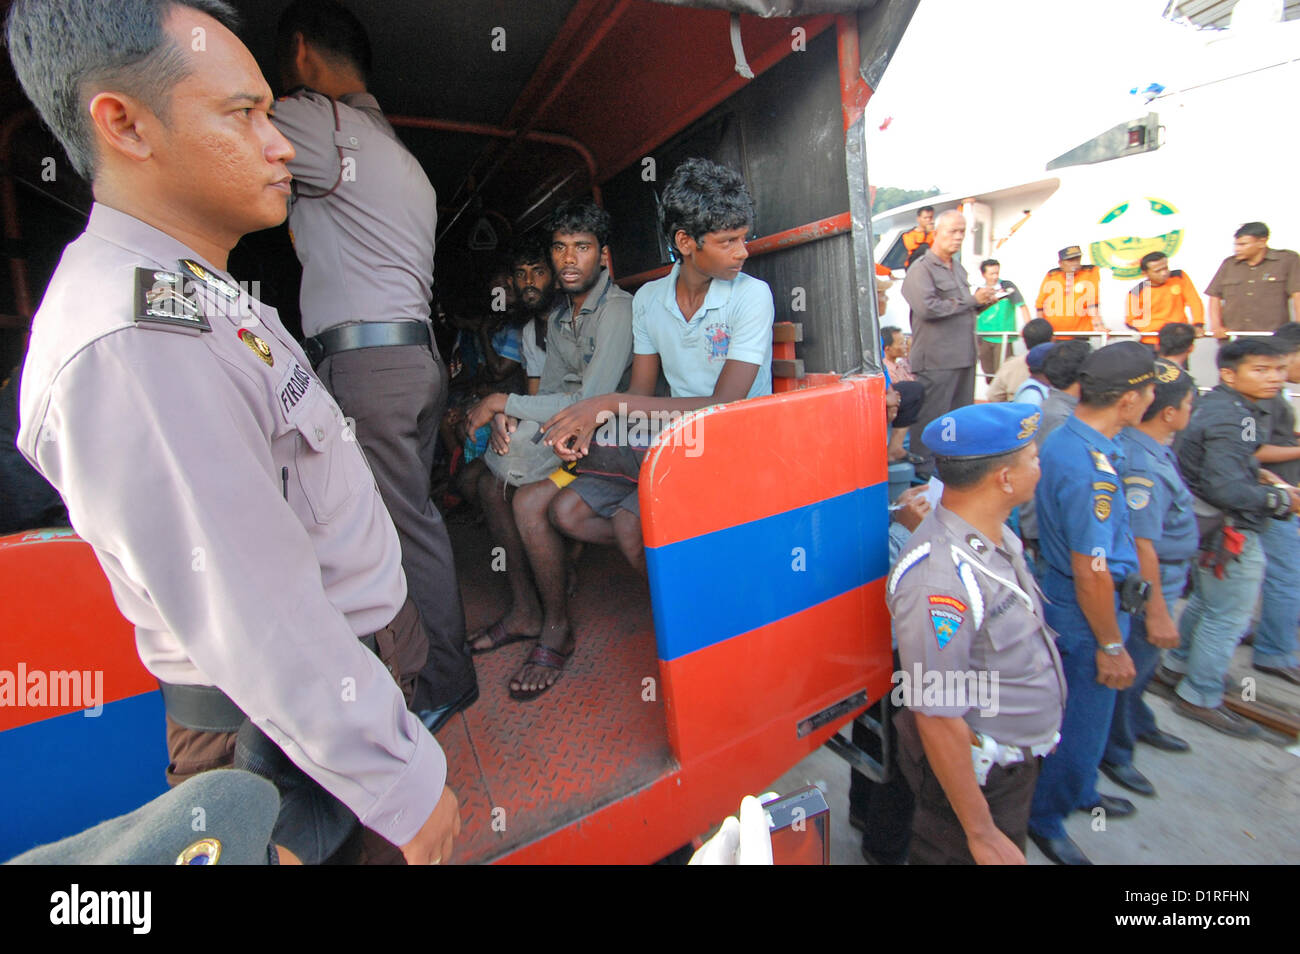 Jan 02, 2013 - West Sumatra, Indonesia - Indonesian rescue workers to evacuate Sri Lankan asylum seekers to Australia - Stock Image